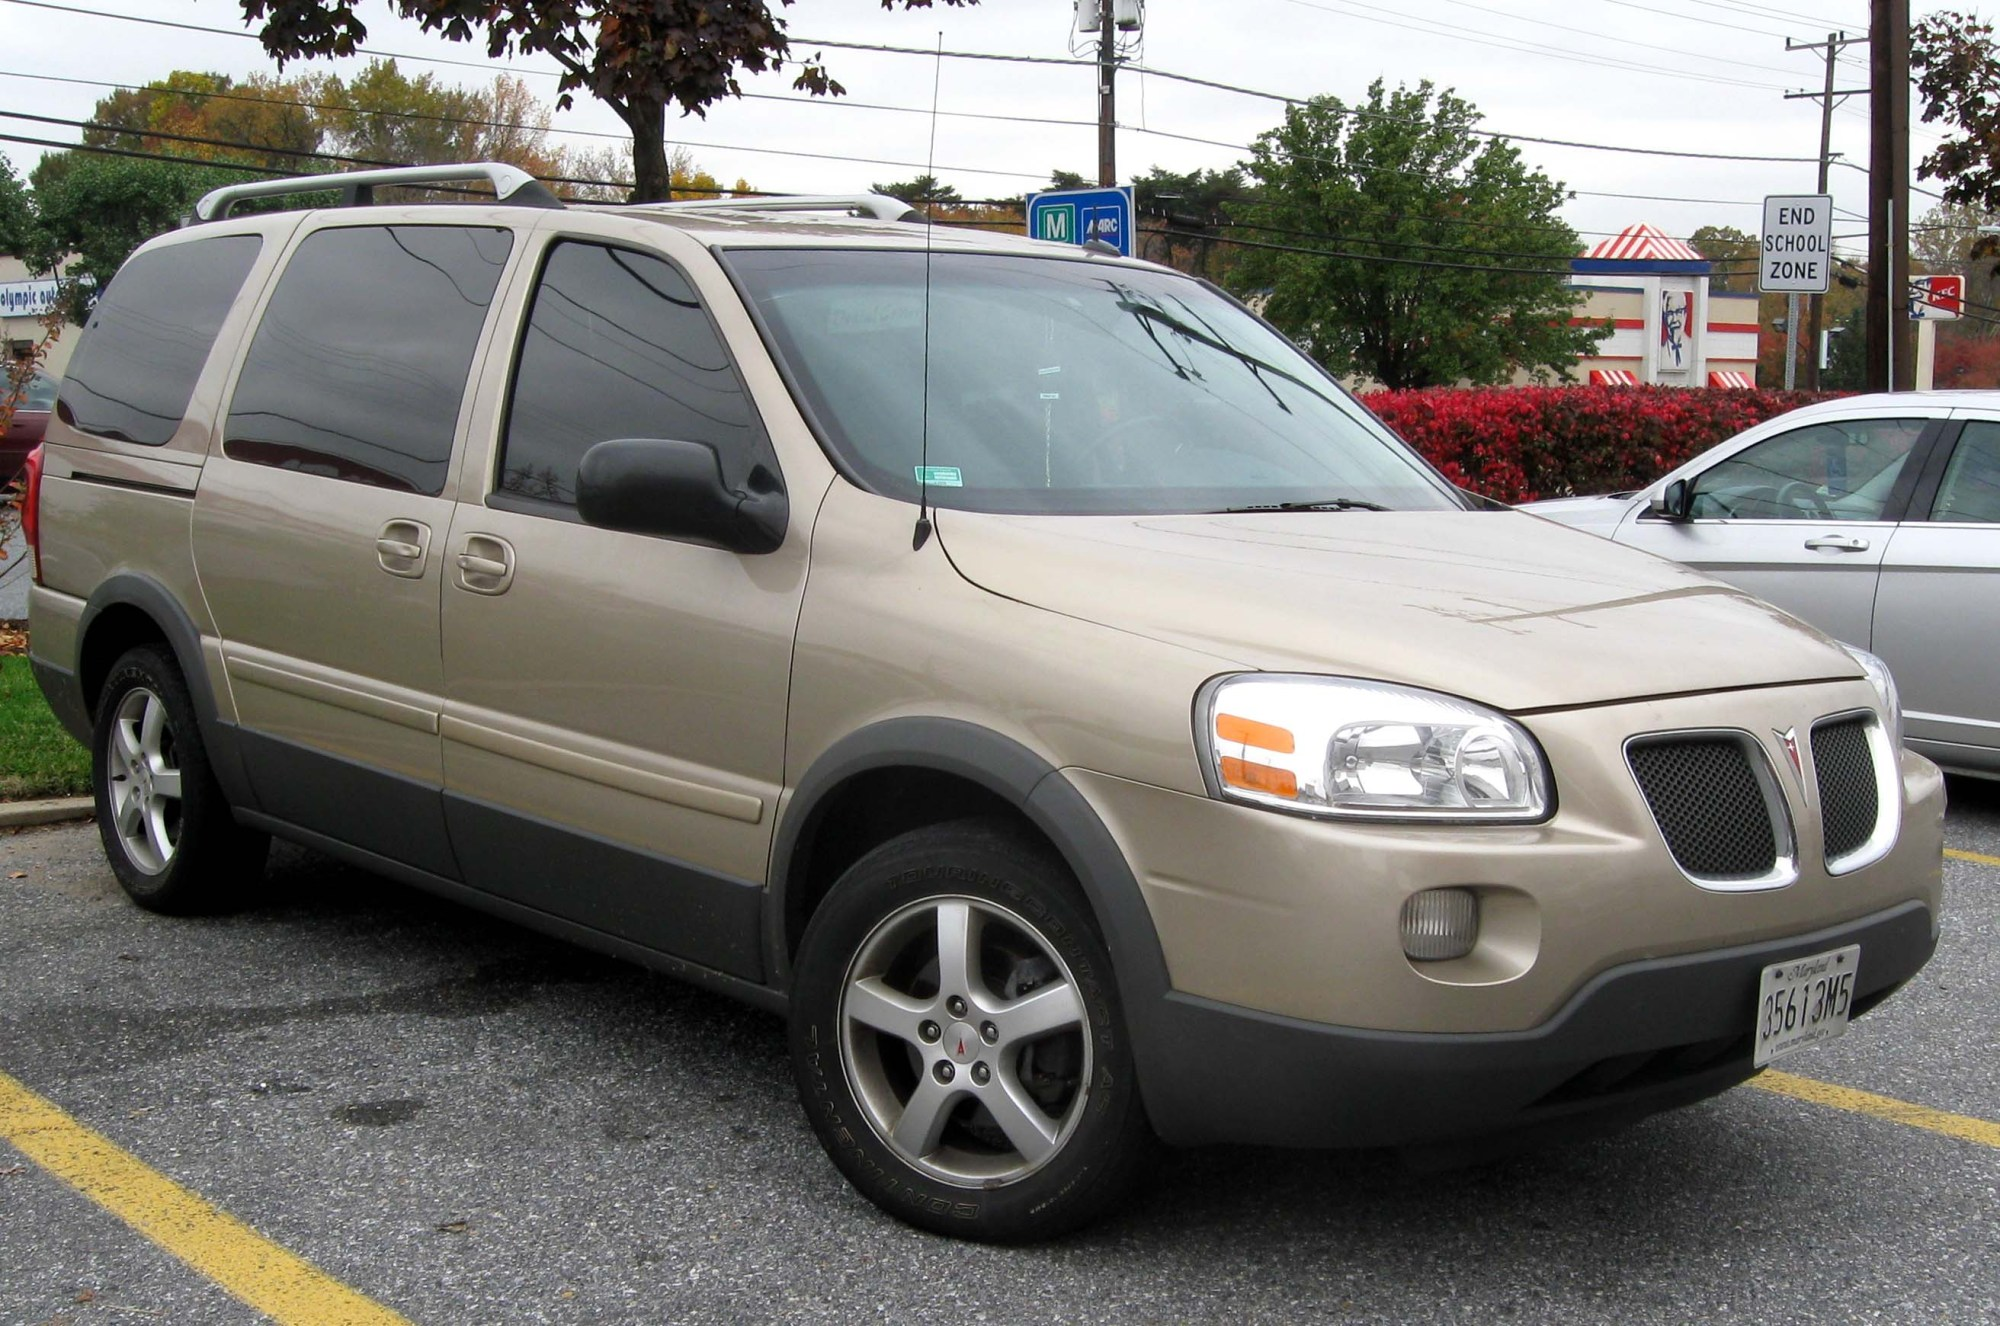 hight resolution of 2002 pontiac montana u pictures information and specs auto 2007 honda civic fuse